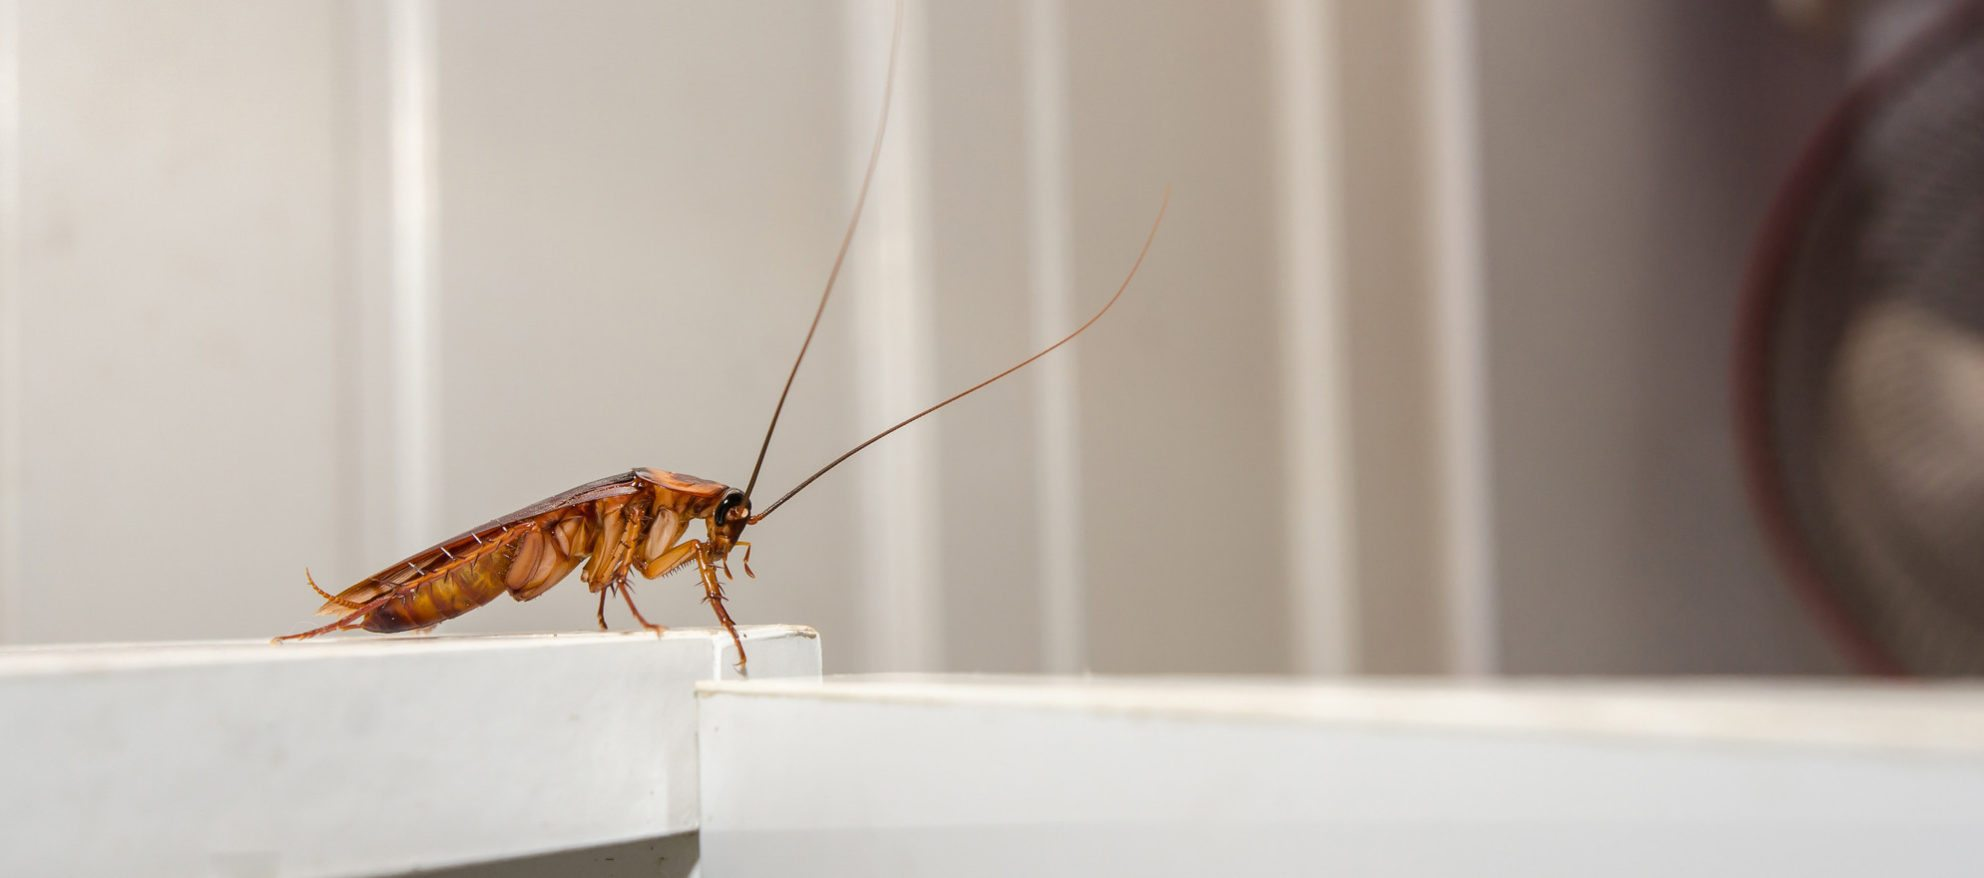 cockroach startup